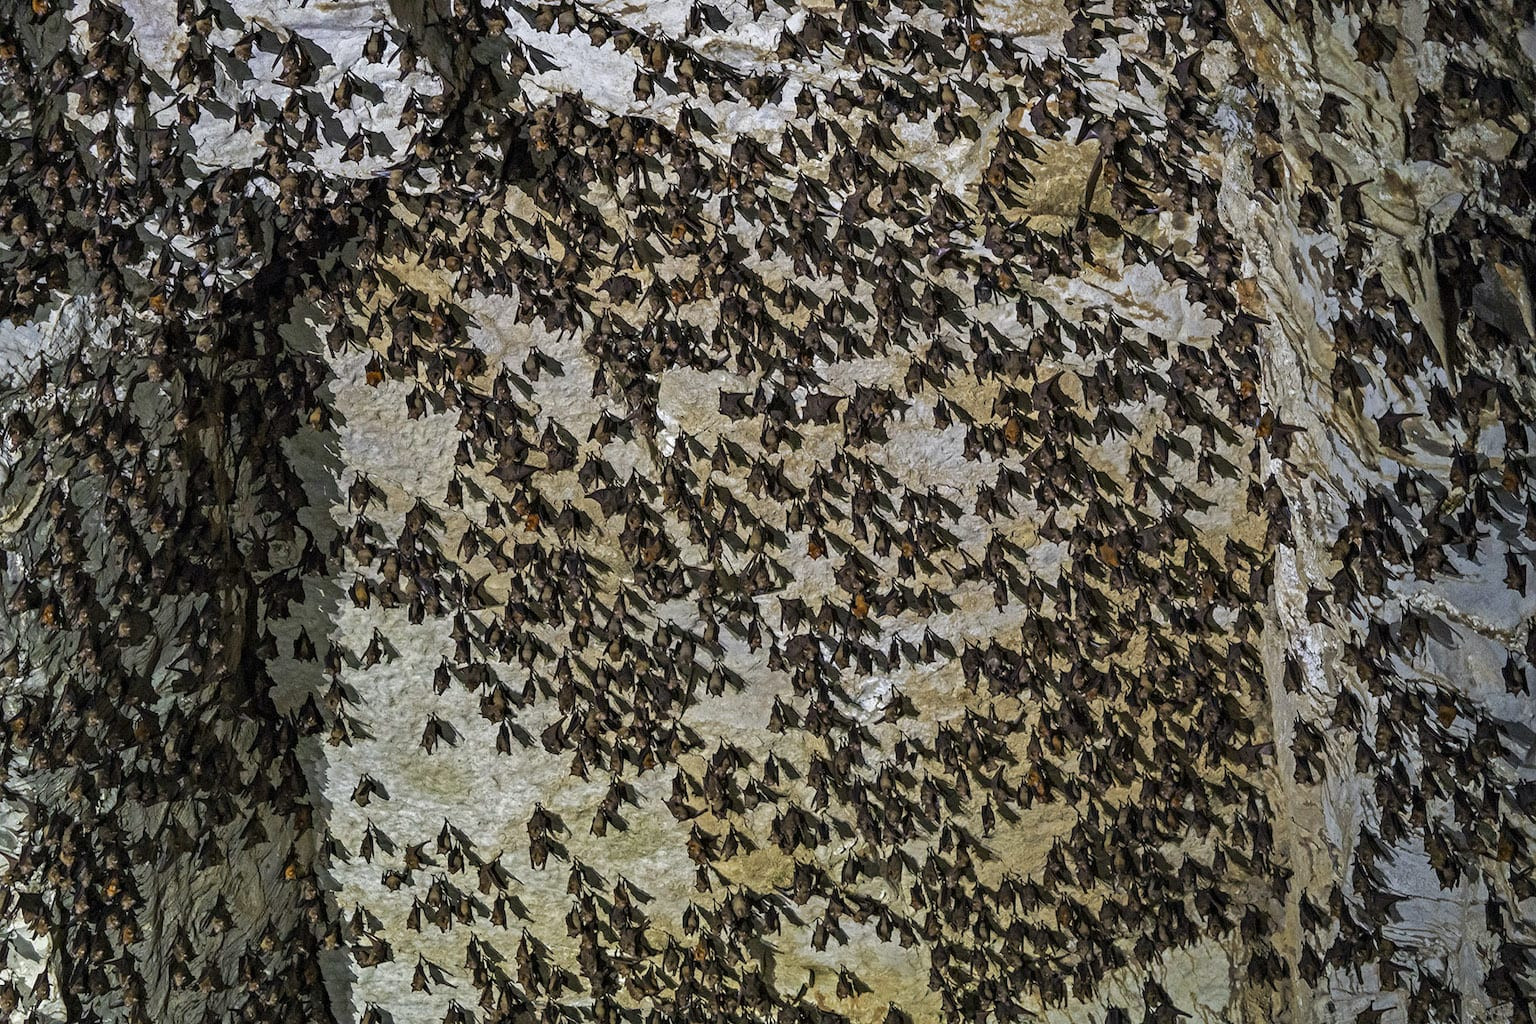 Colony of bats in the Meghalyan river cave Krem Chympe